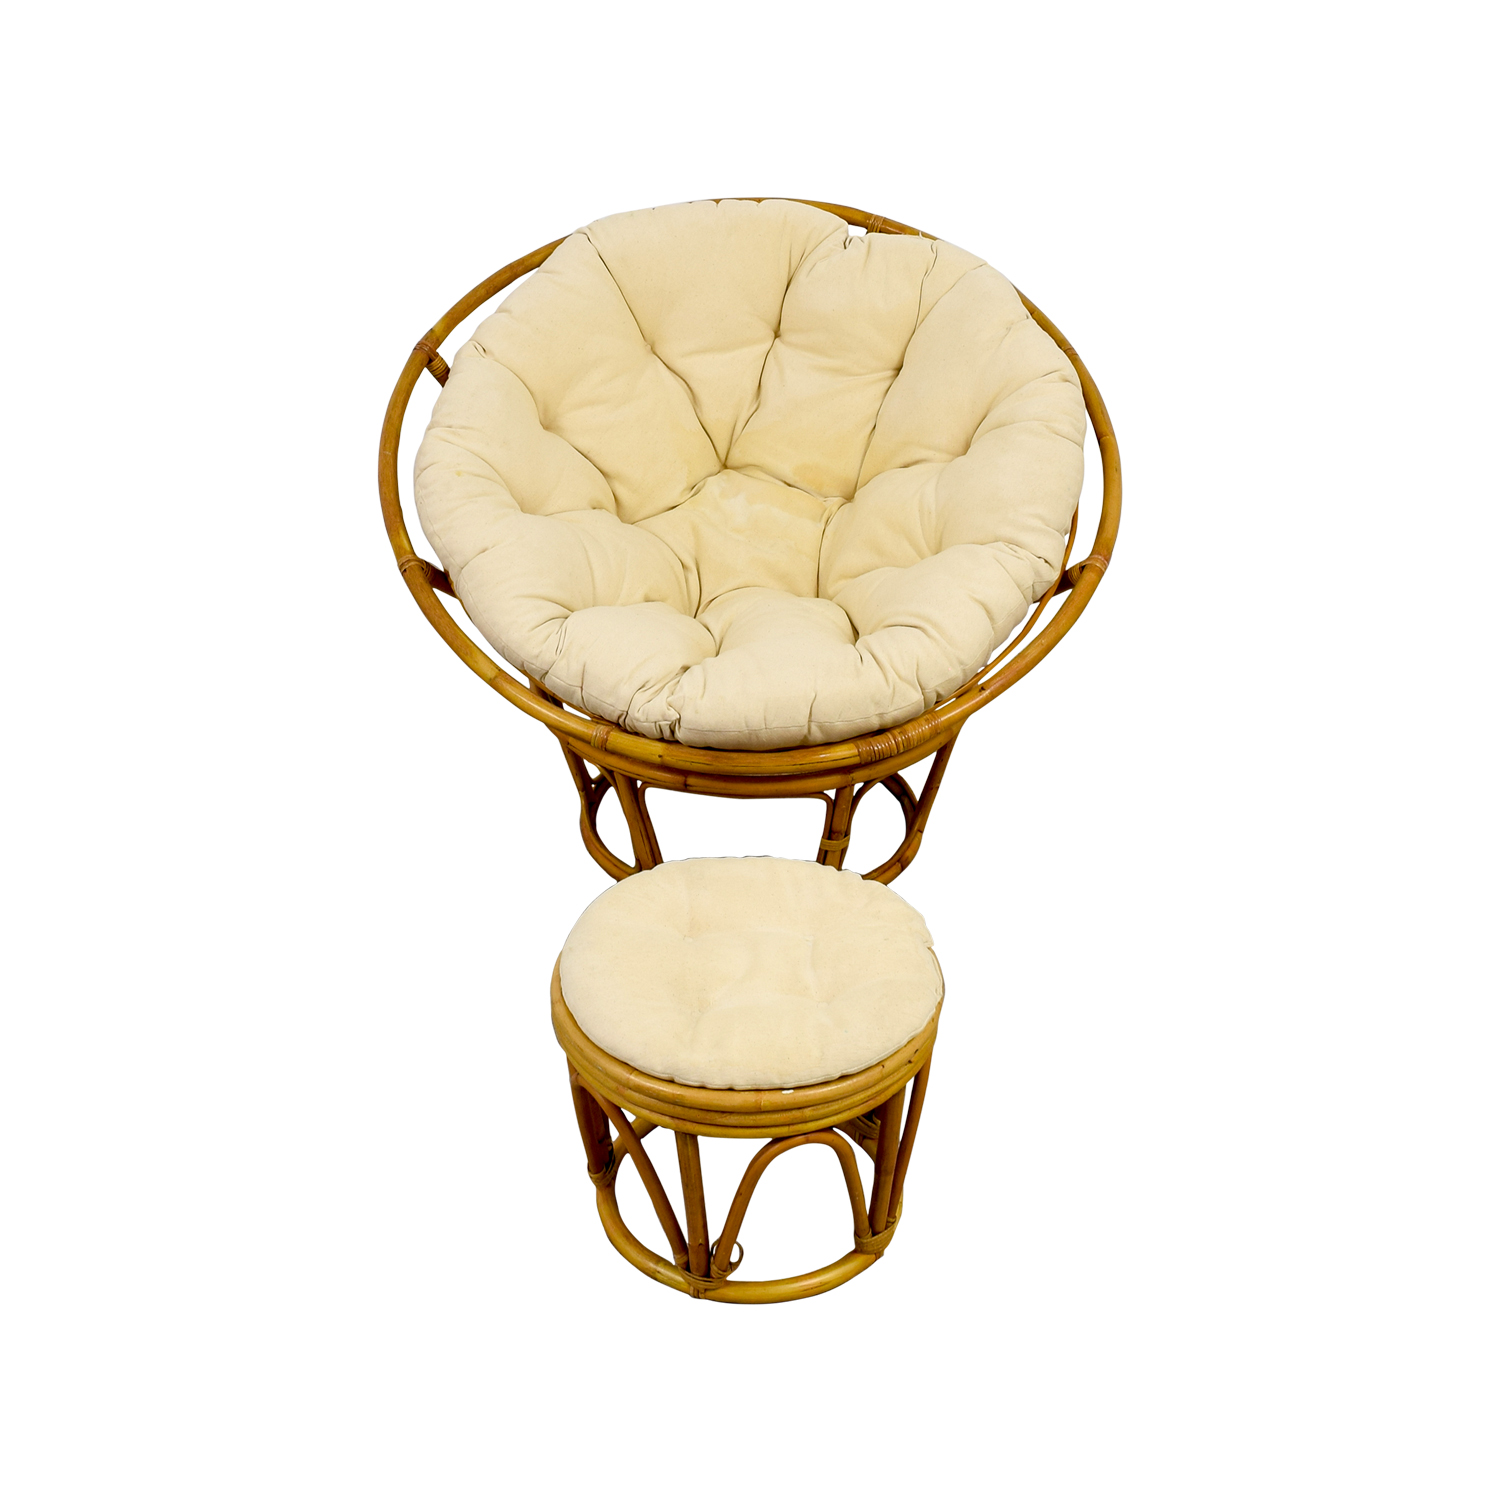 Pier 1 Pier 1 Papasan Chair with Footstool price